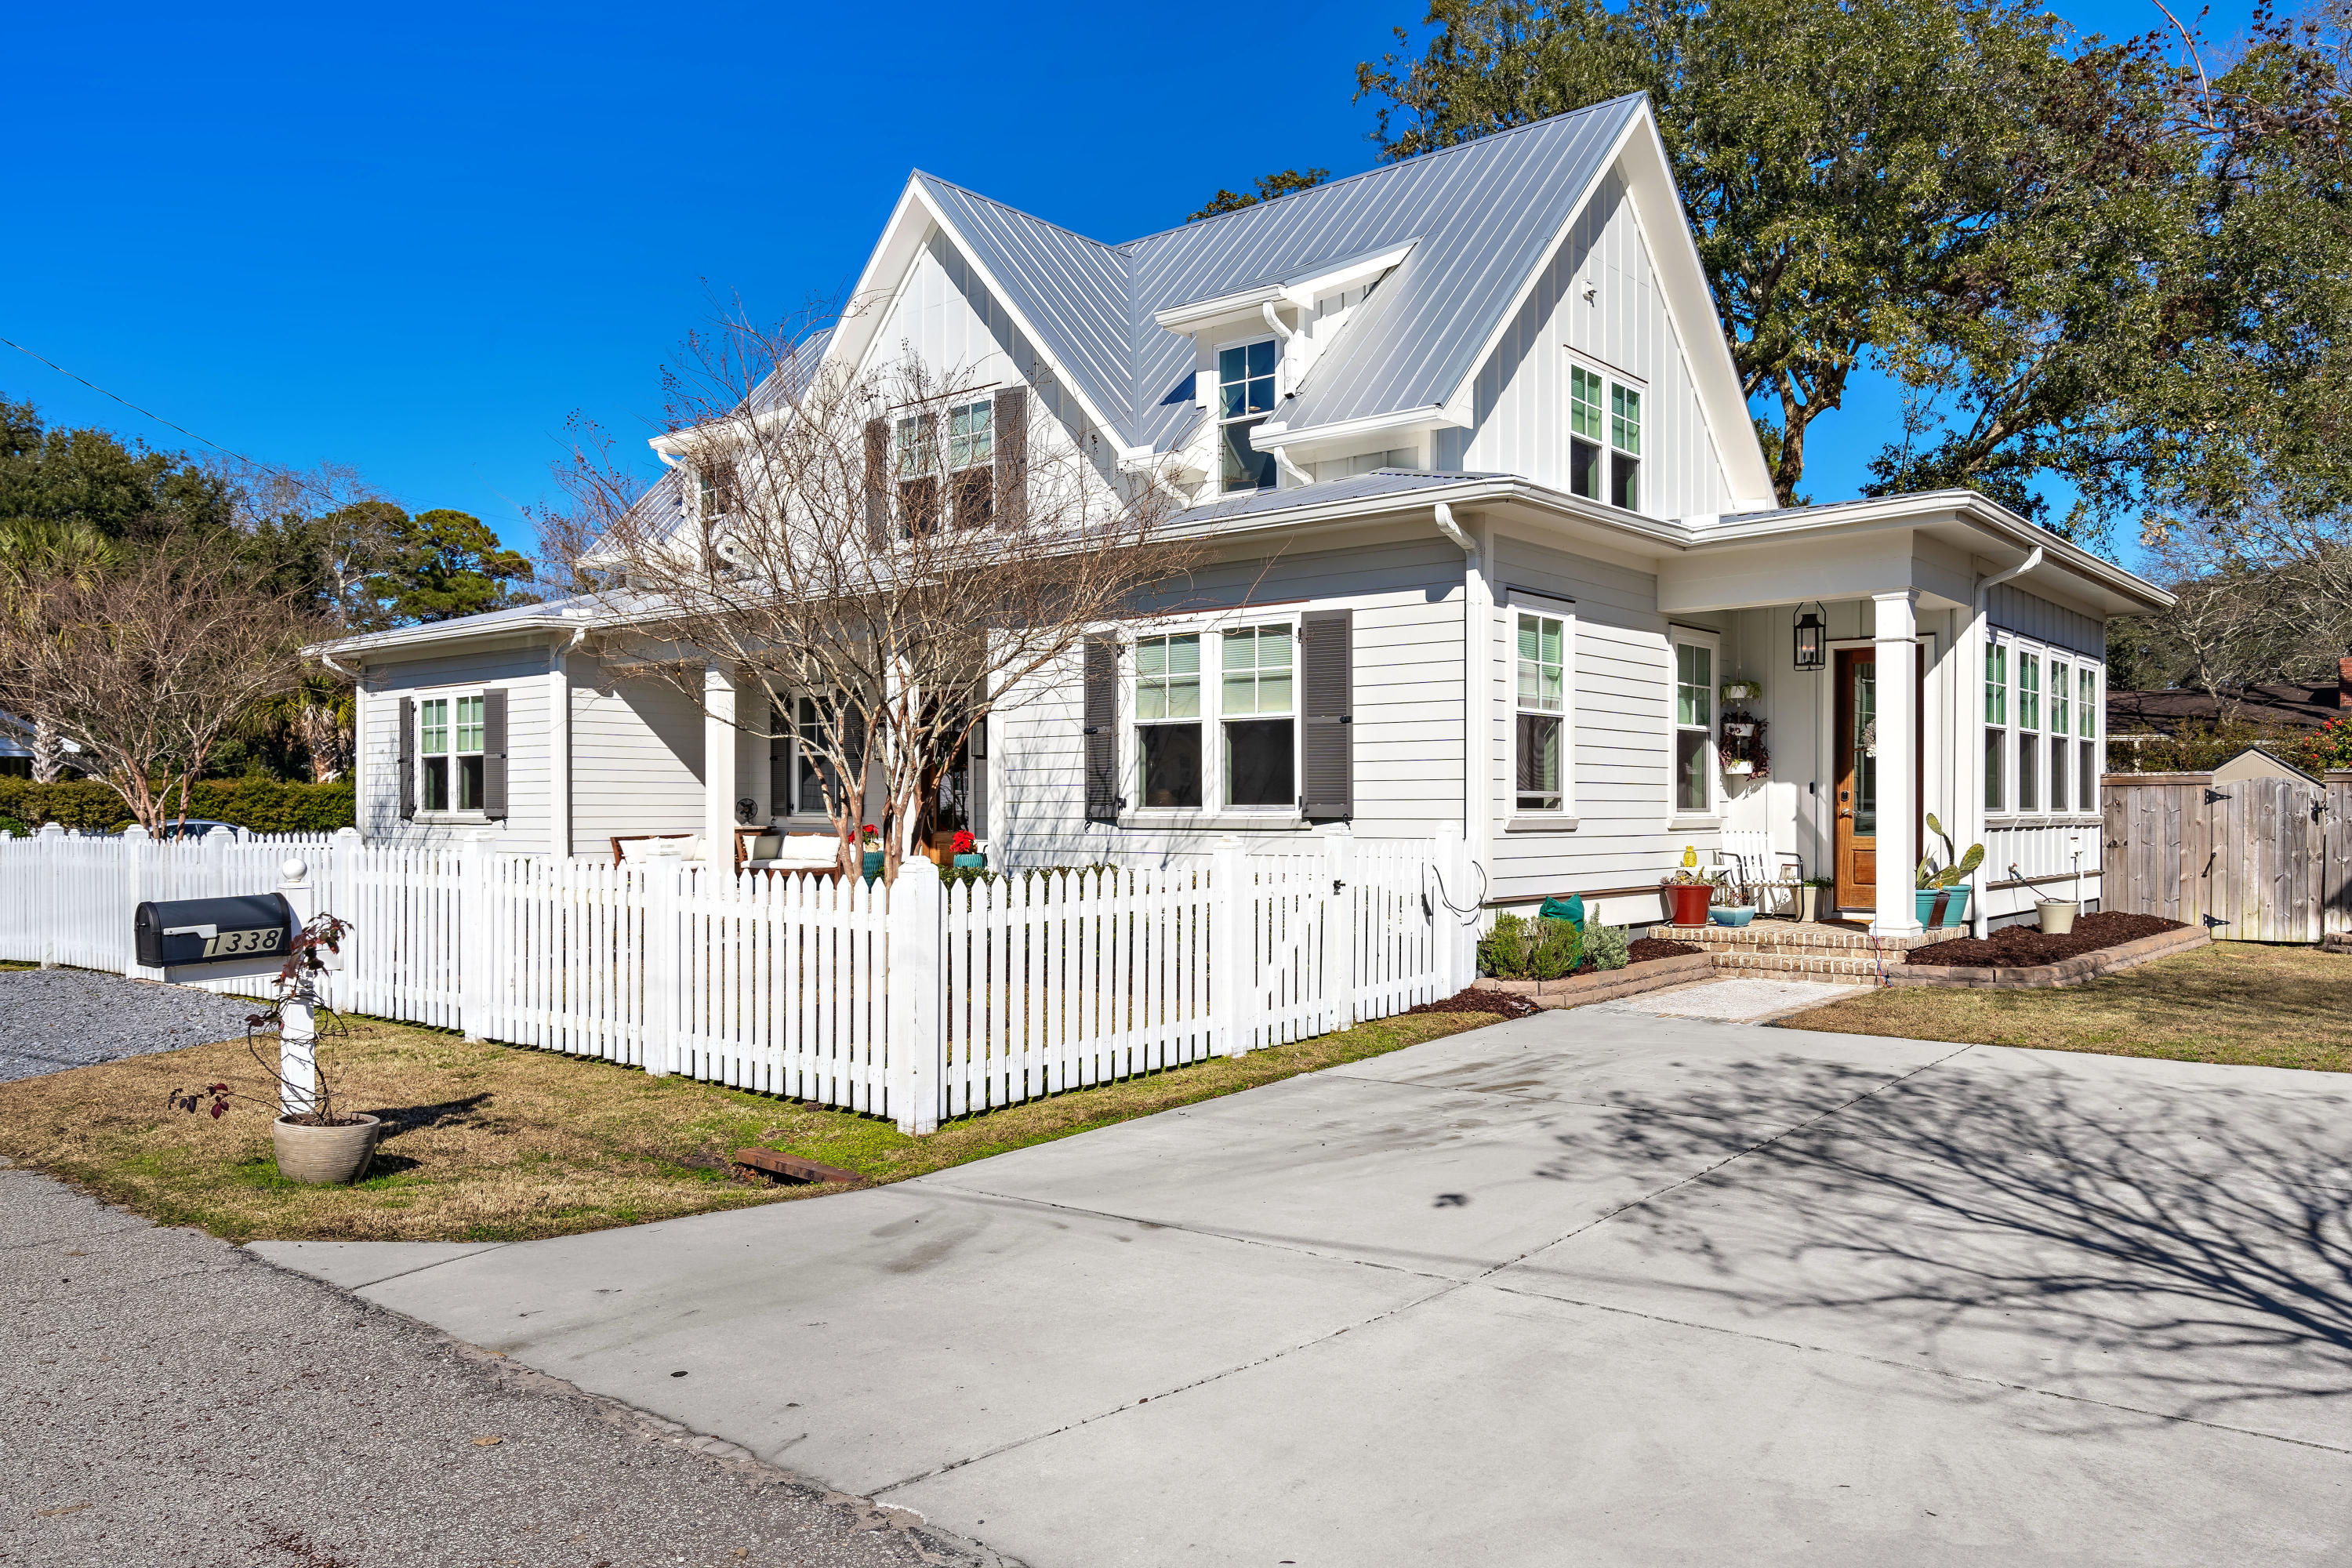 Old Mt Pleasant Homes For Sale - 1338 Majore, Mount Pleasant, SC - 20